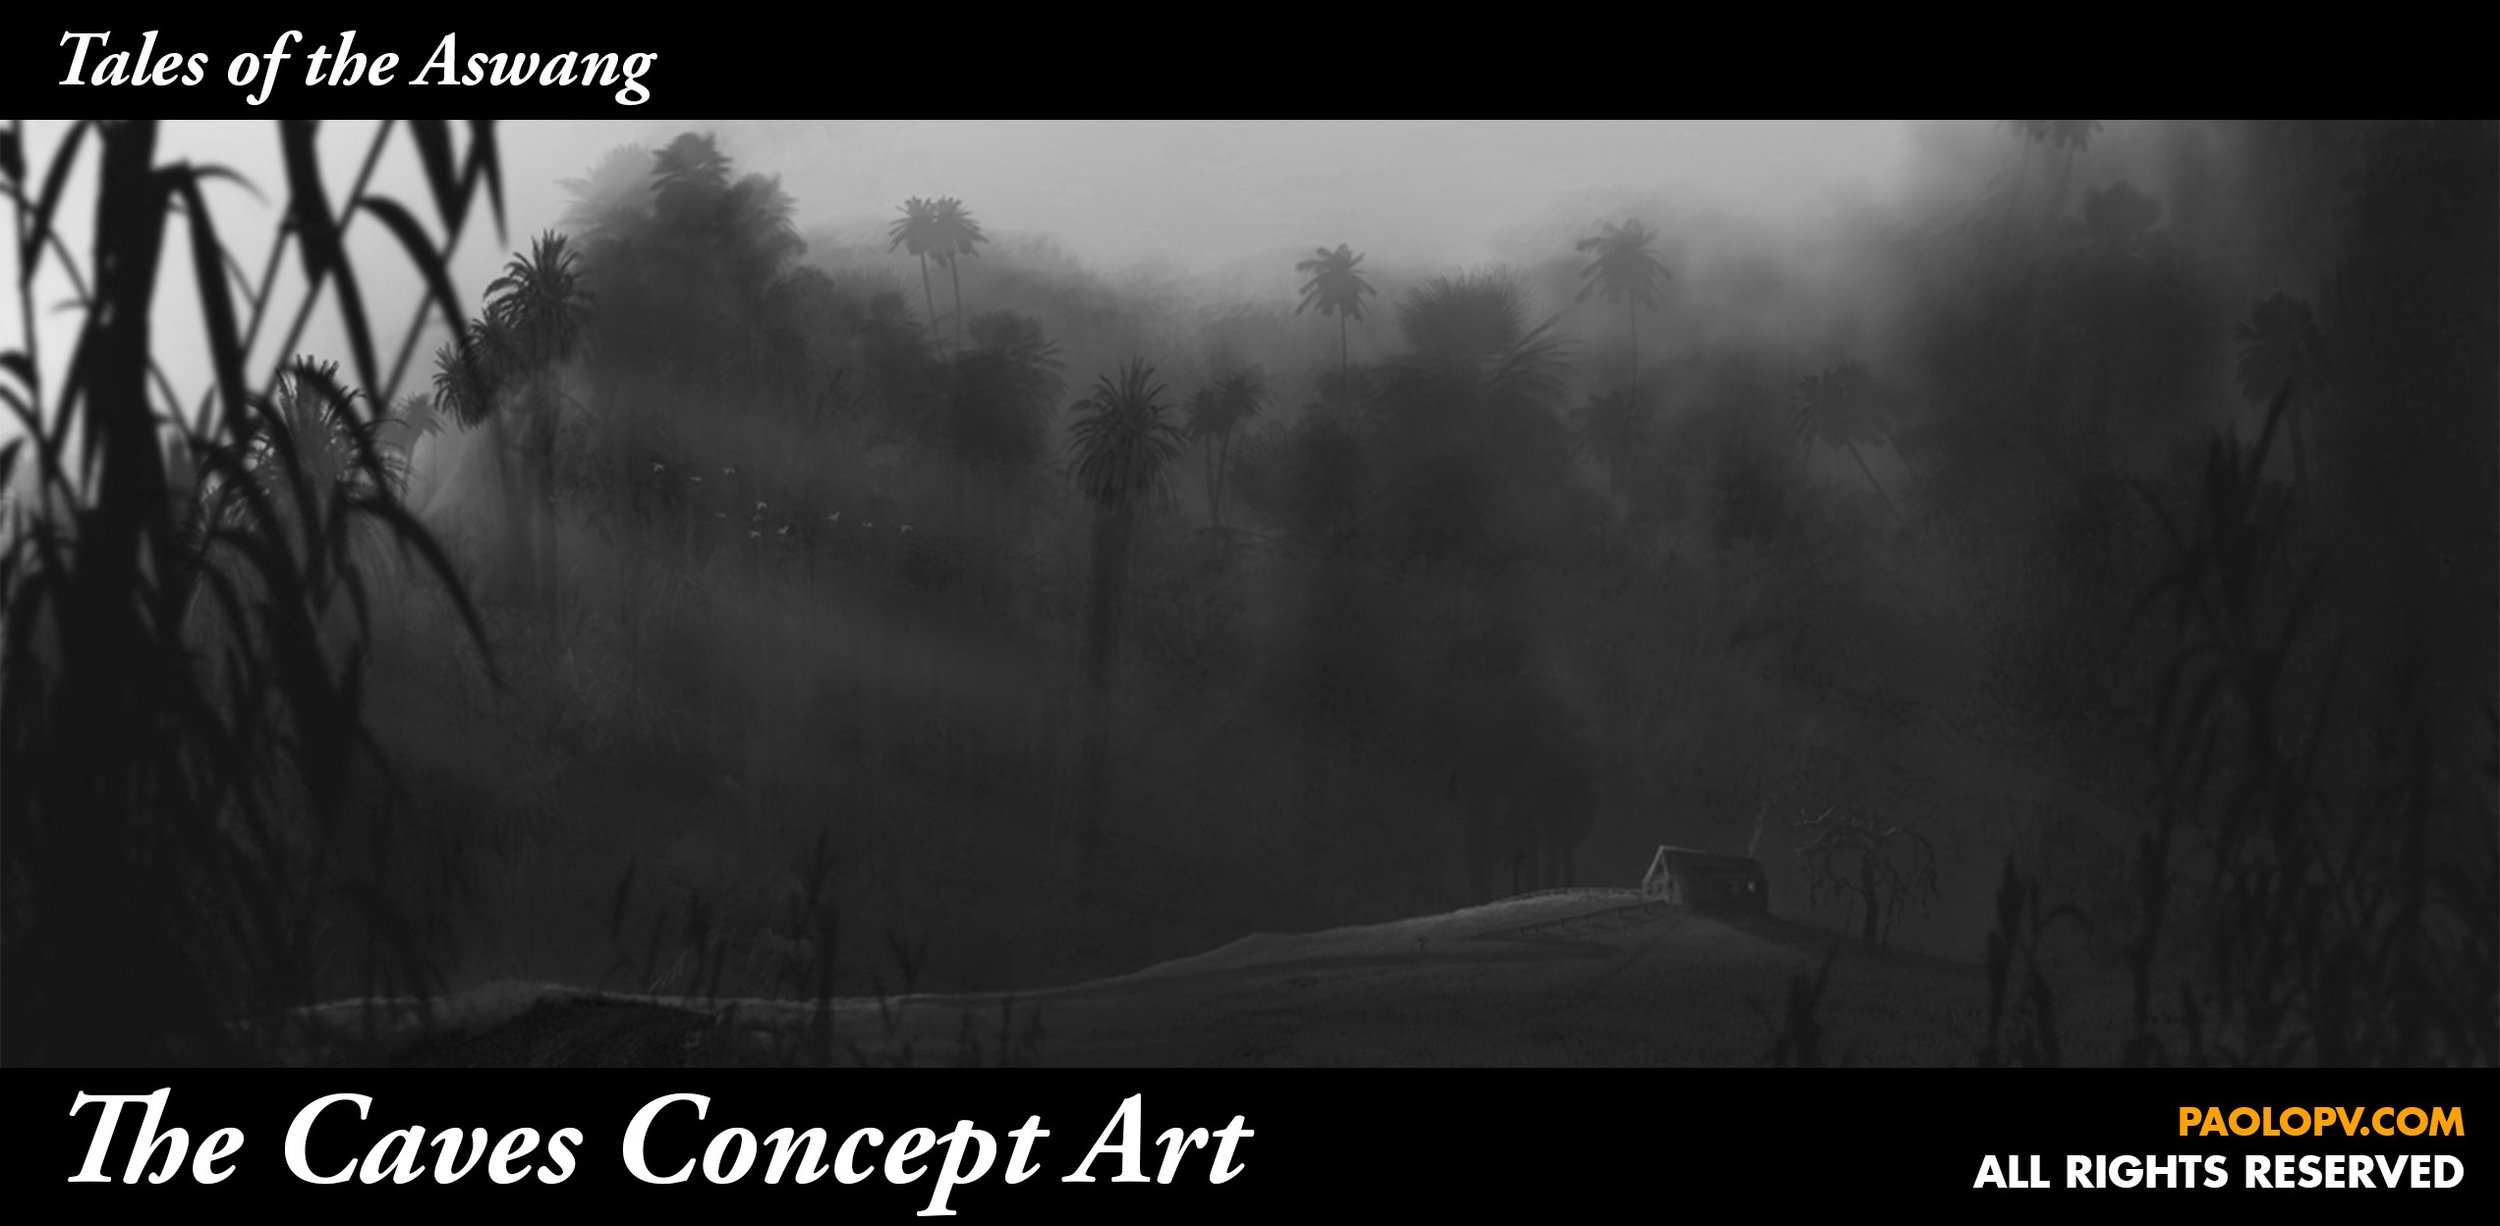 Tales-of-the-Aswang-Concept-Art-After-the-Storm.jpg